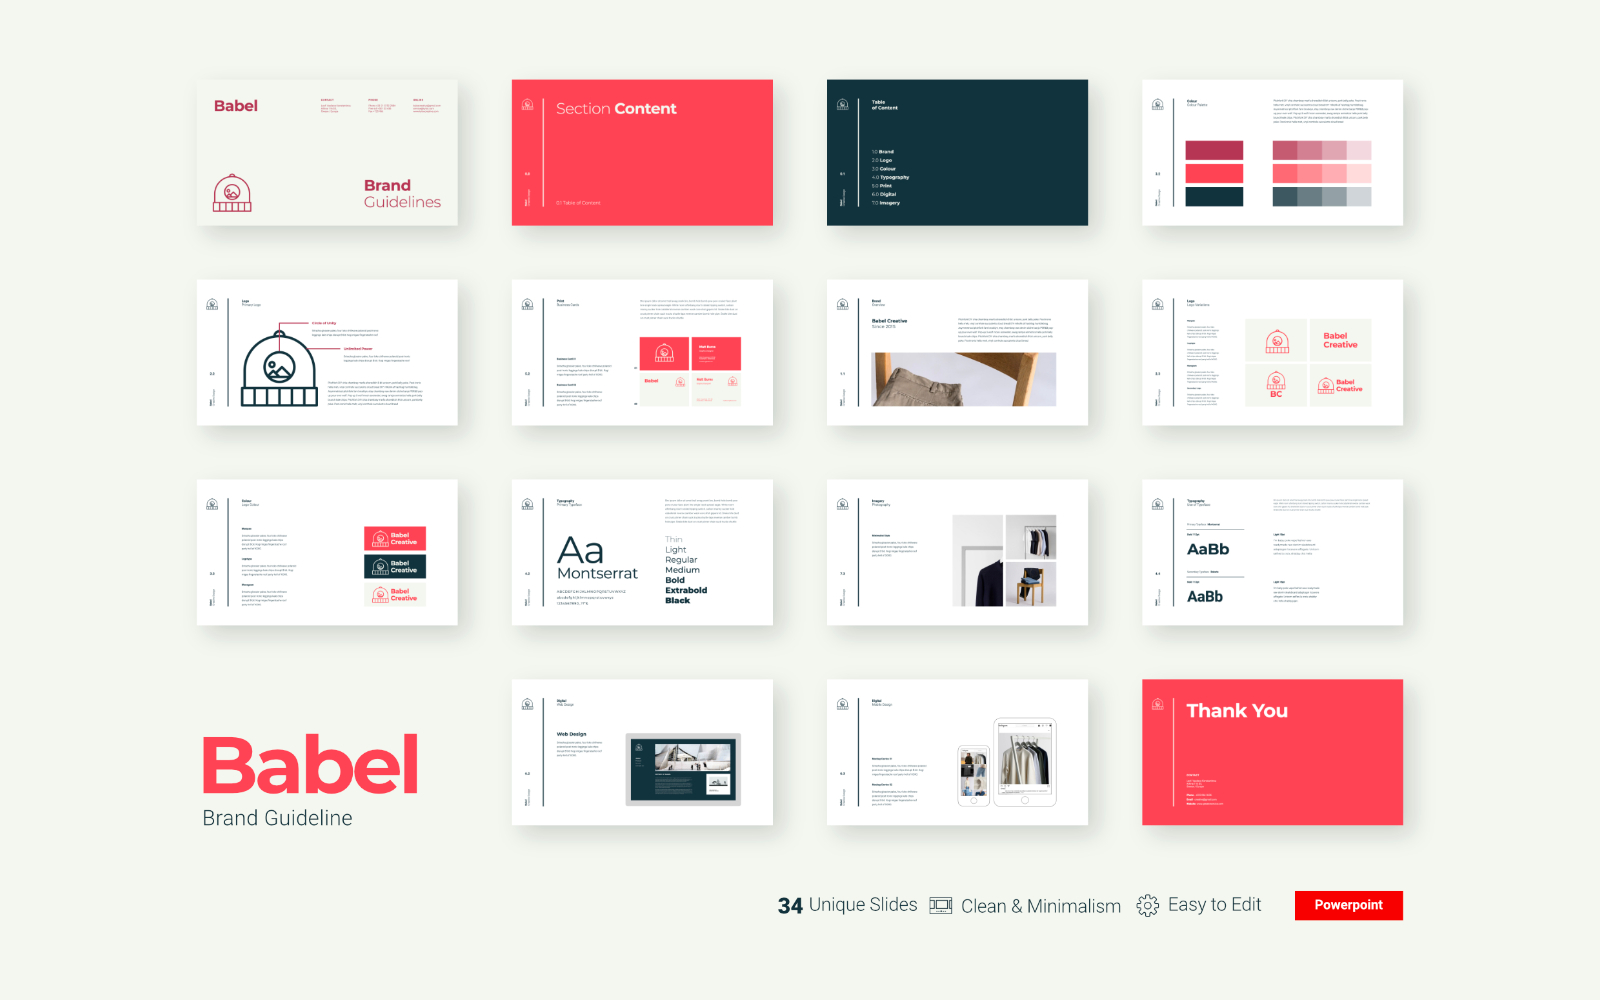 Babel - Brand Guidelines Presentation - Powerpoint Template